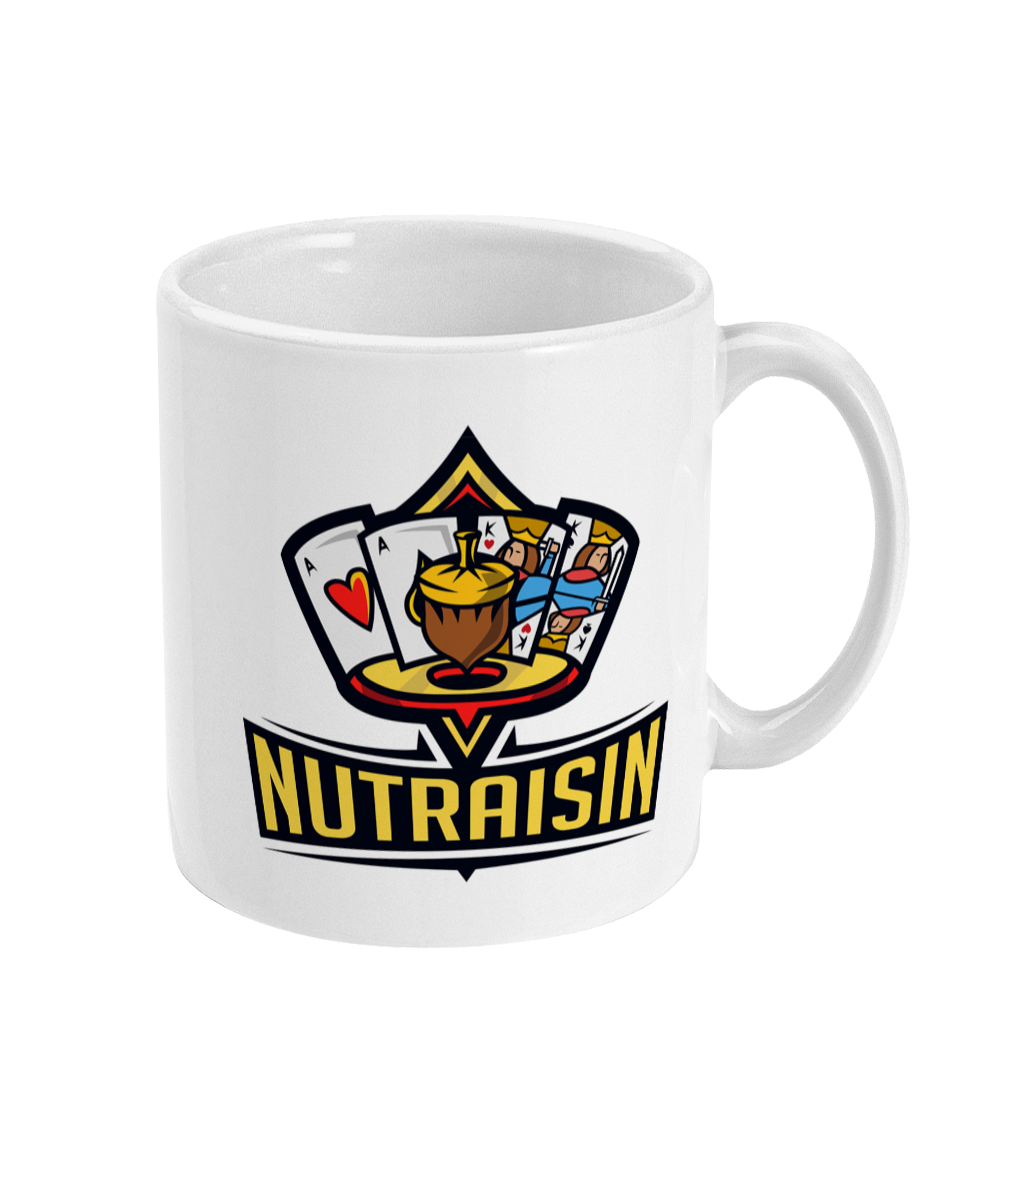 NutRaisin-Mug-Right-1